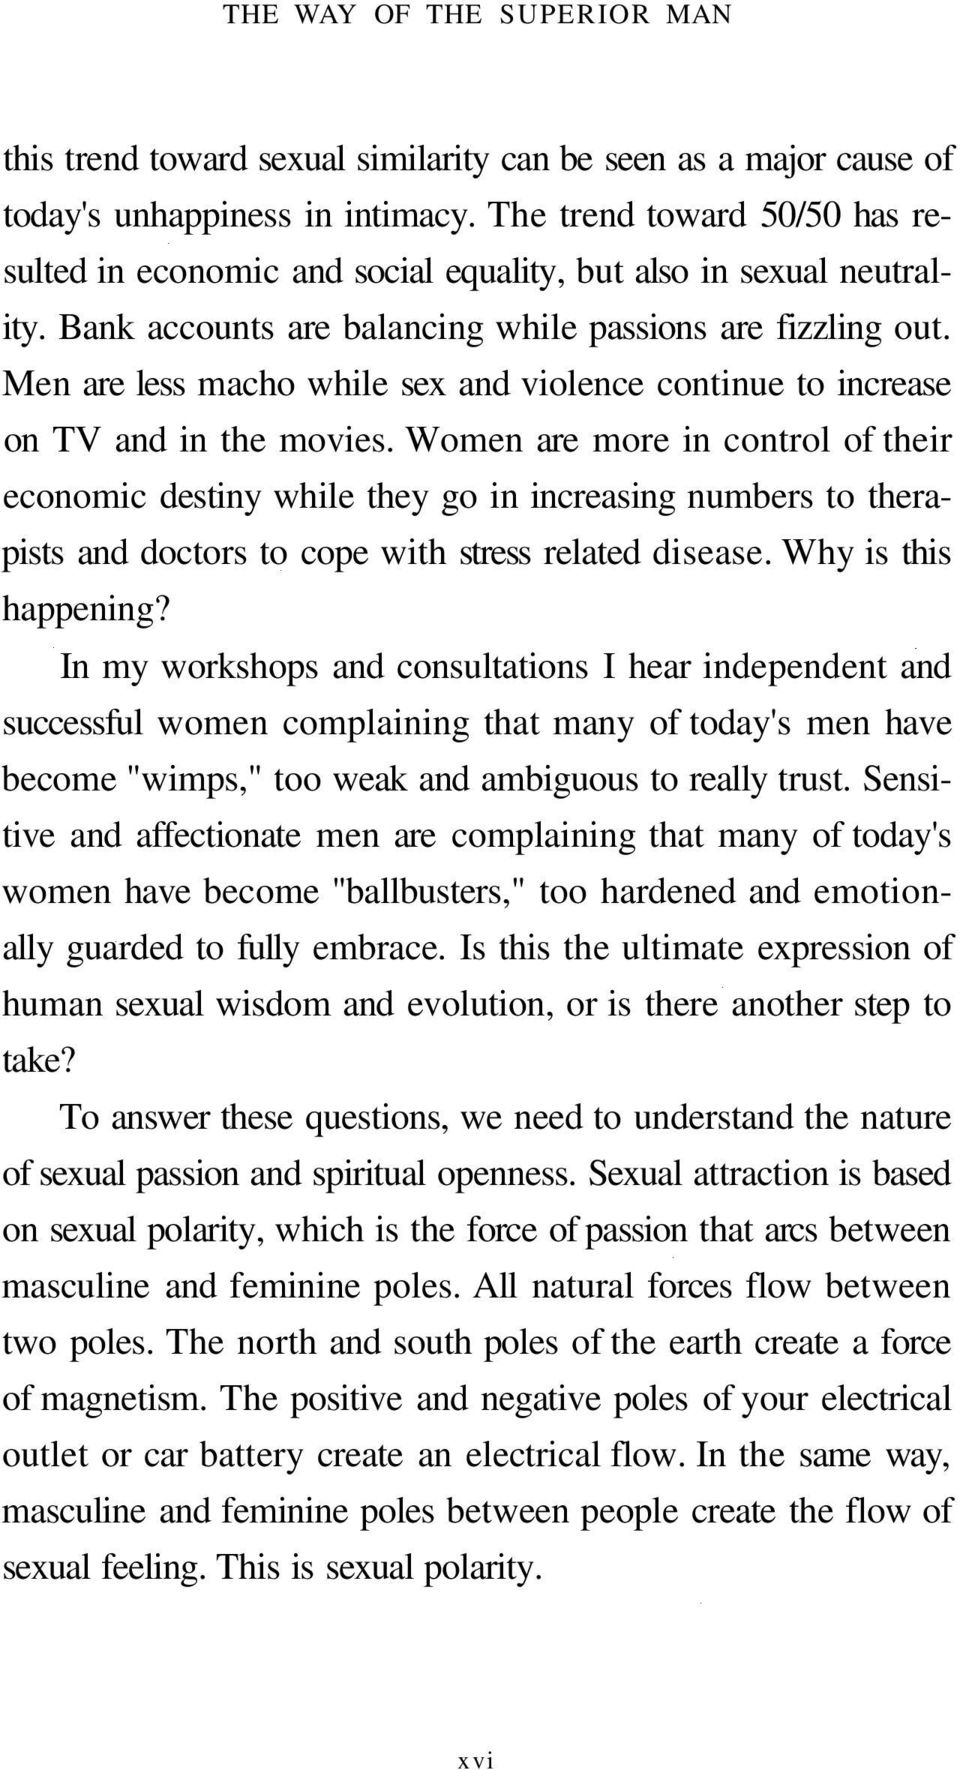 Men are less macho while sex and violence continue to increase on TV and in the movies.